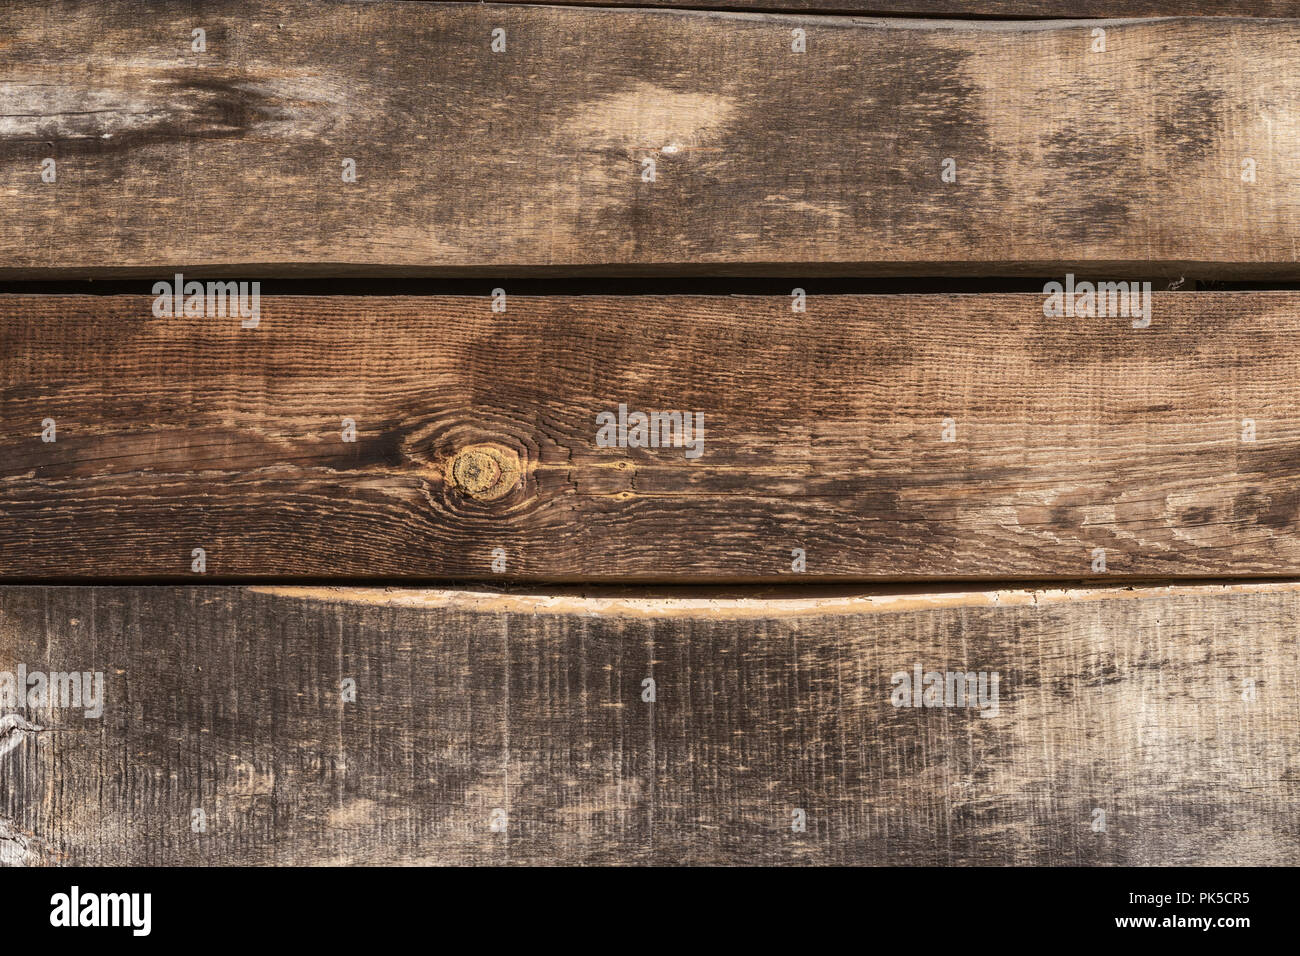 Vintage wooden horizontal wood planks with cracks, scratches